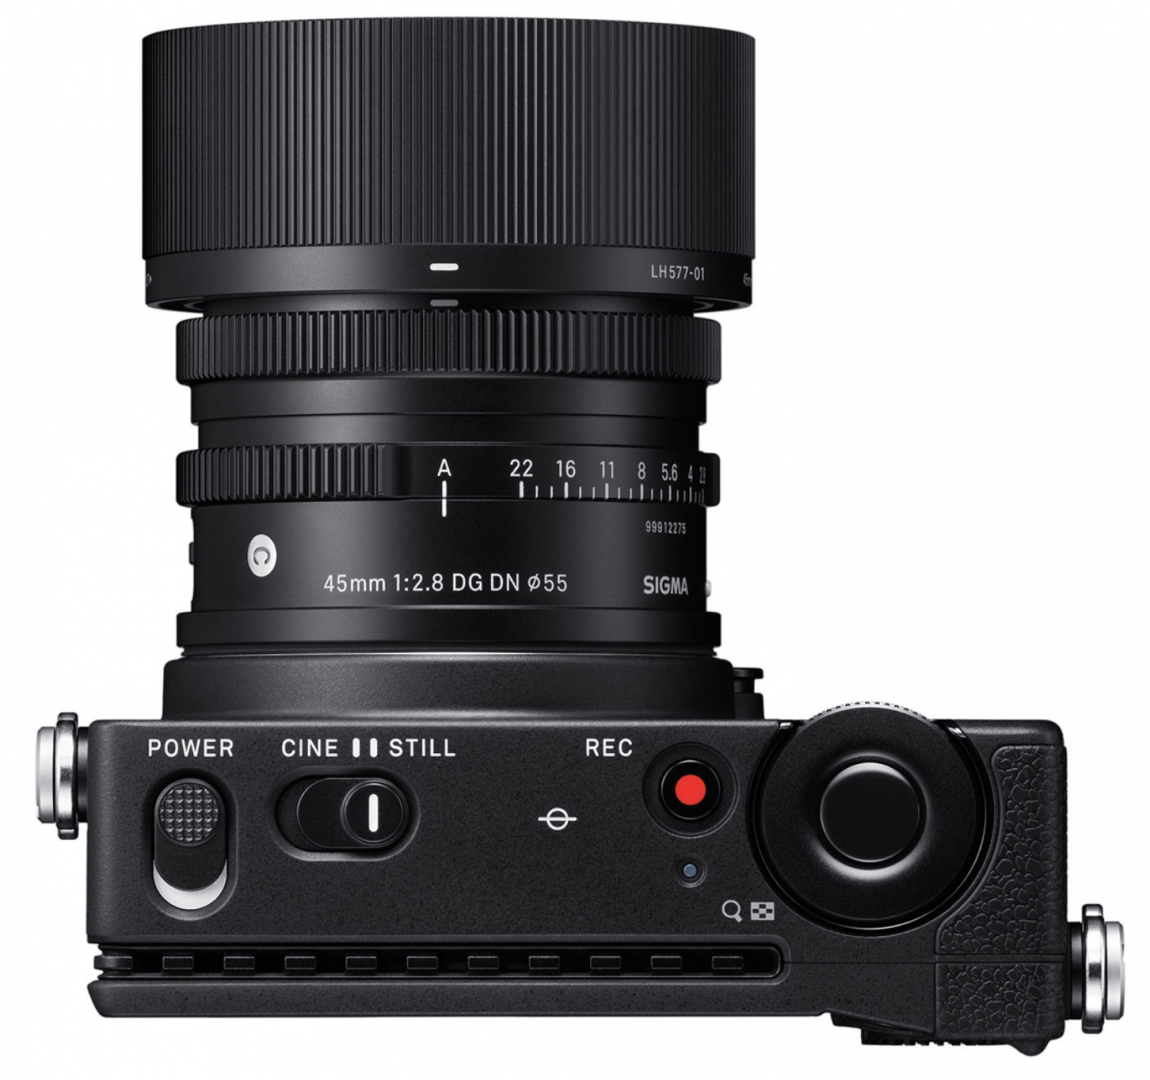 At £2,399, including the 45mm f/2.8 lens, the fp kit represents reasonable value for money.